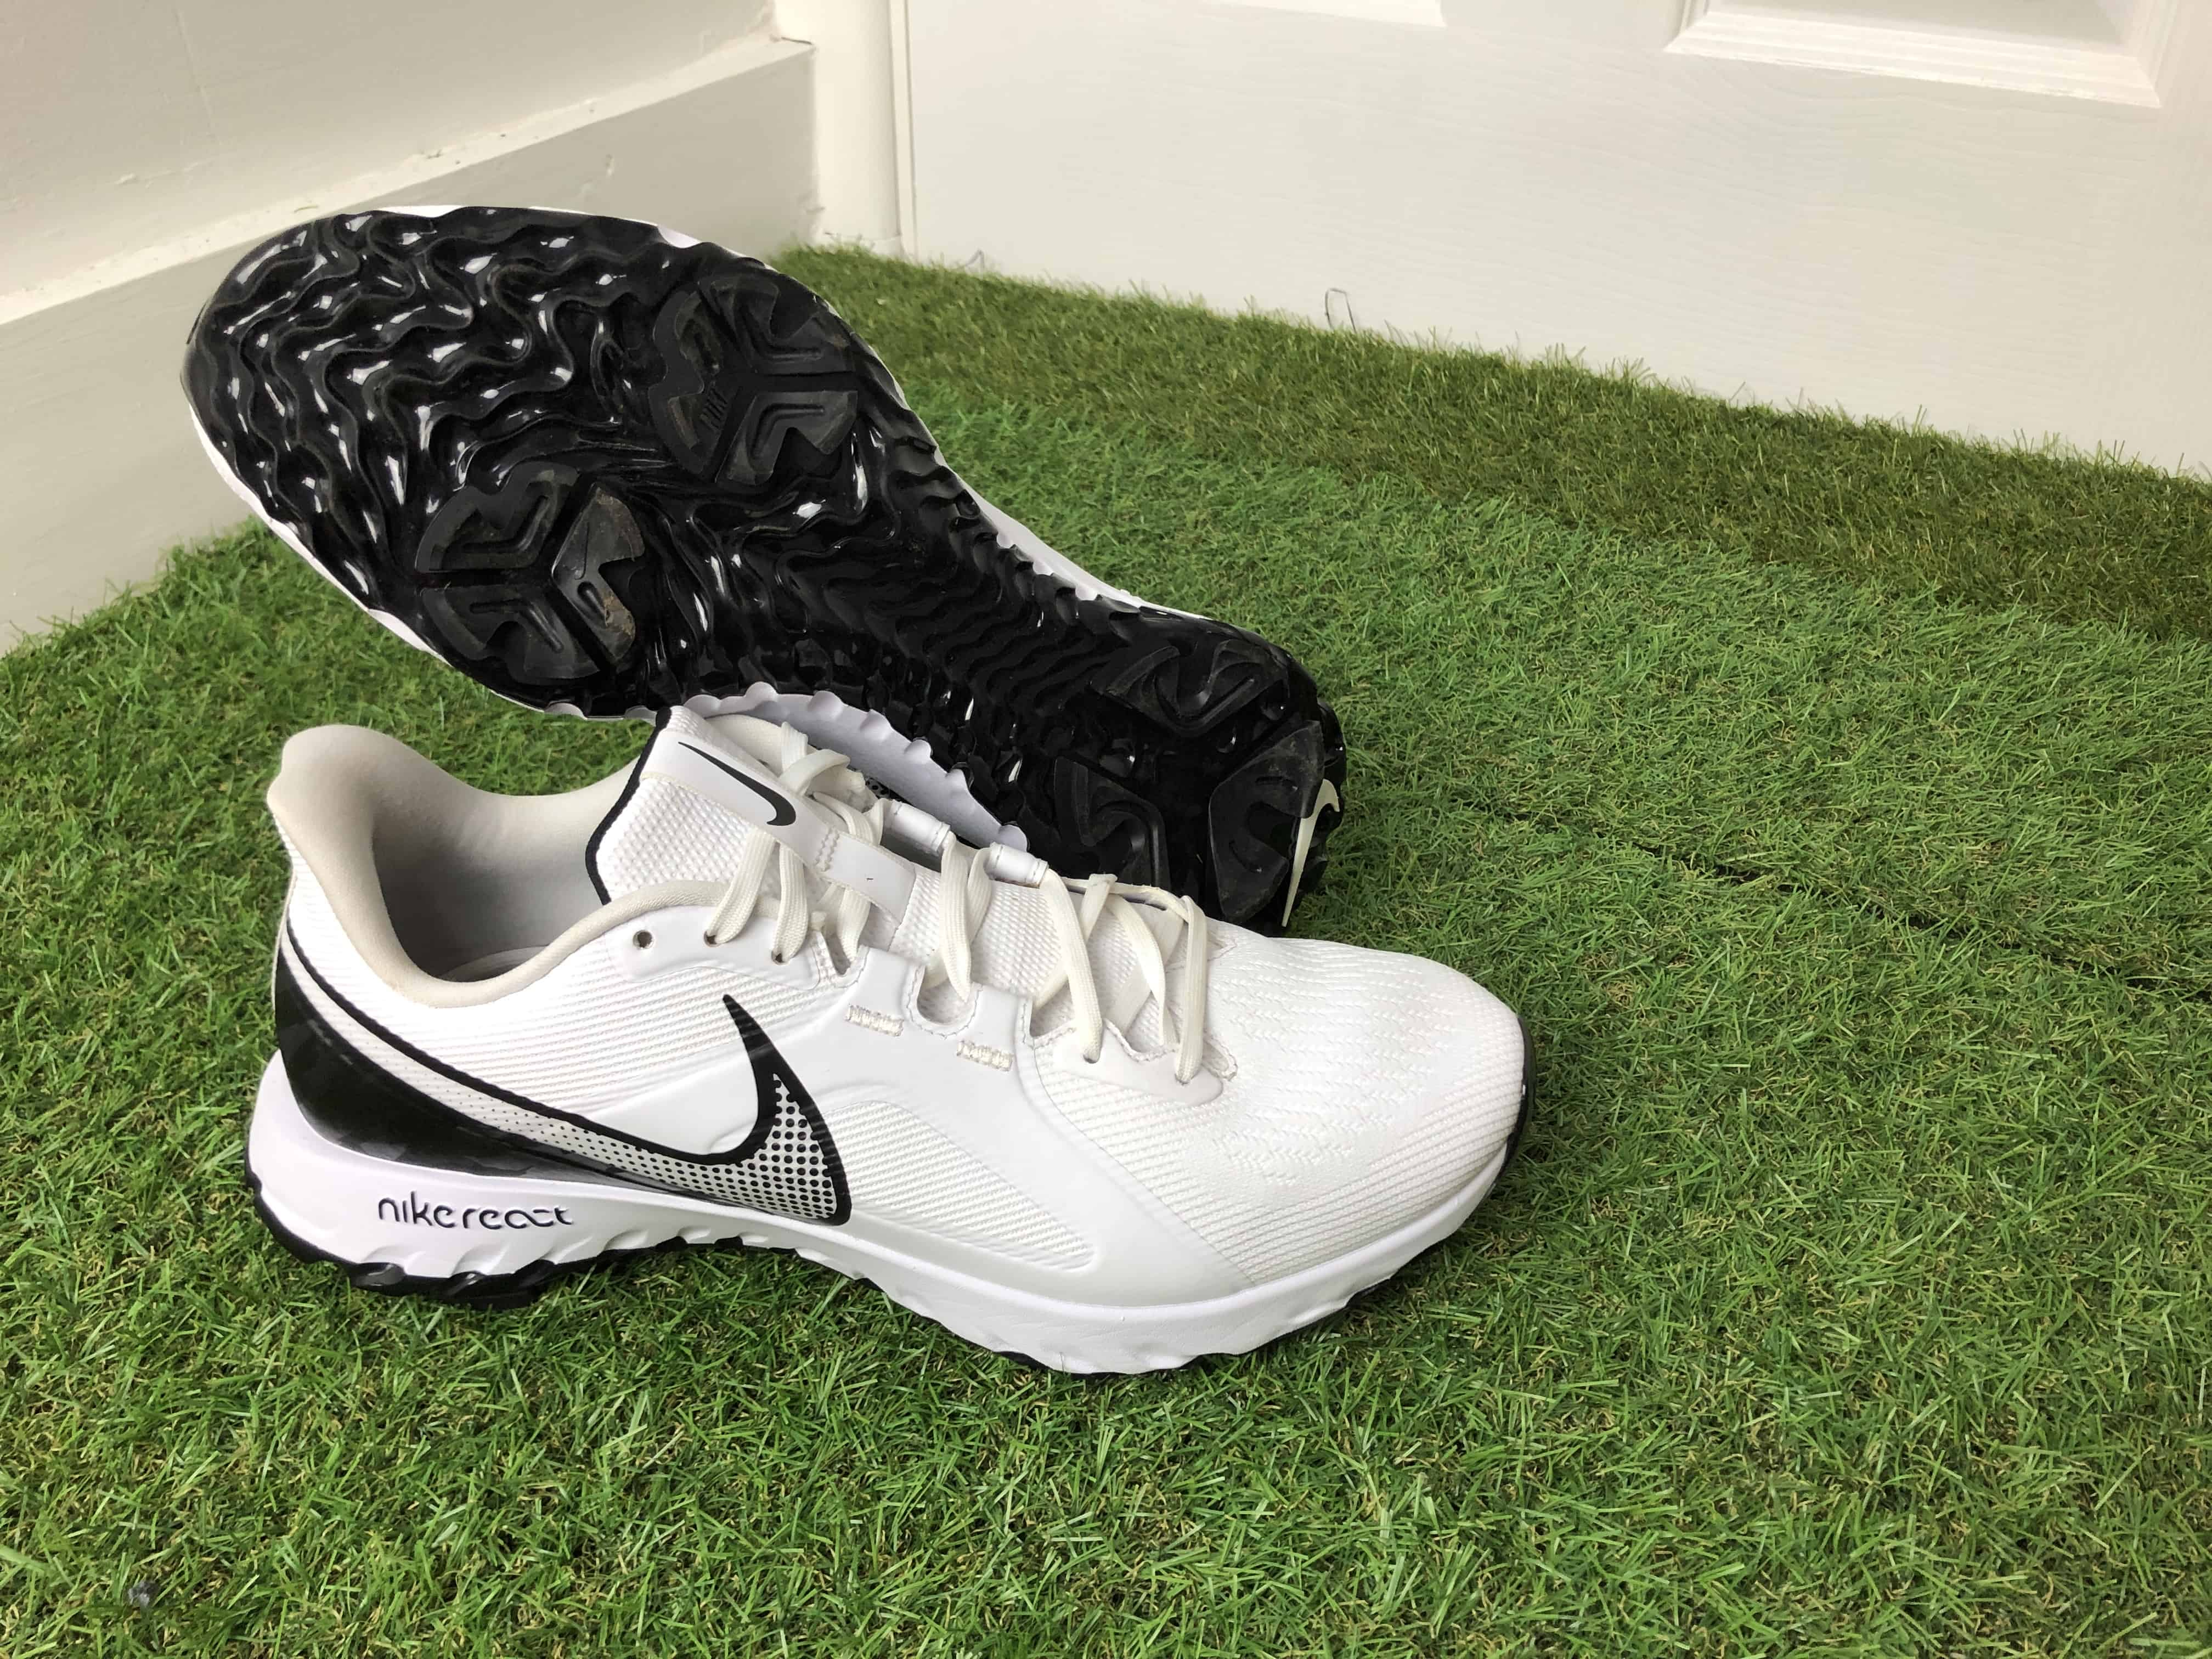 Nike React Infinity Pro Golf Shoes Review – Golf Guy Reviews